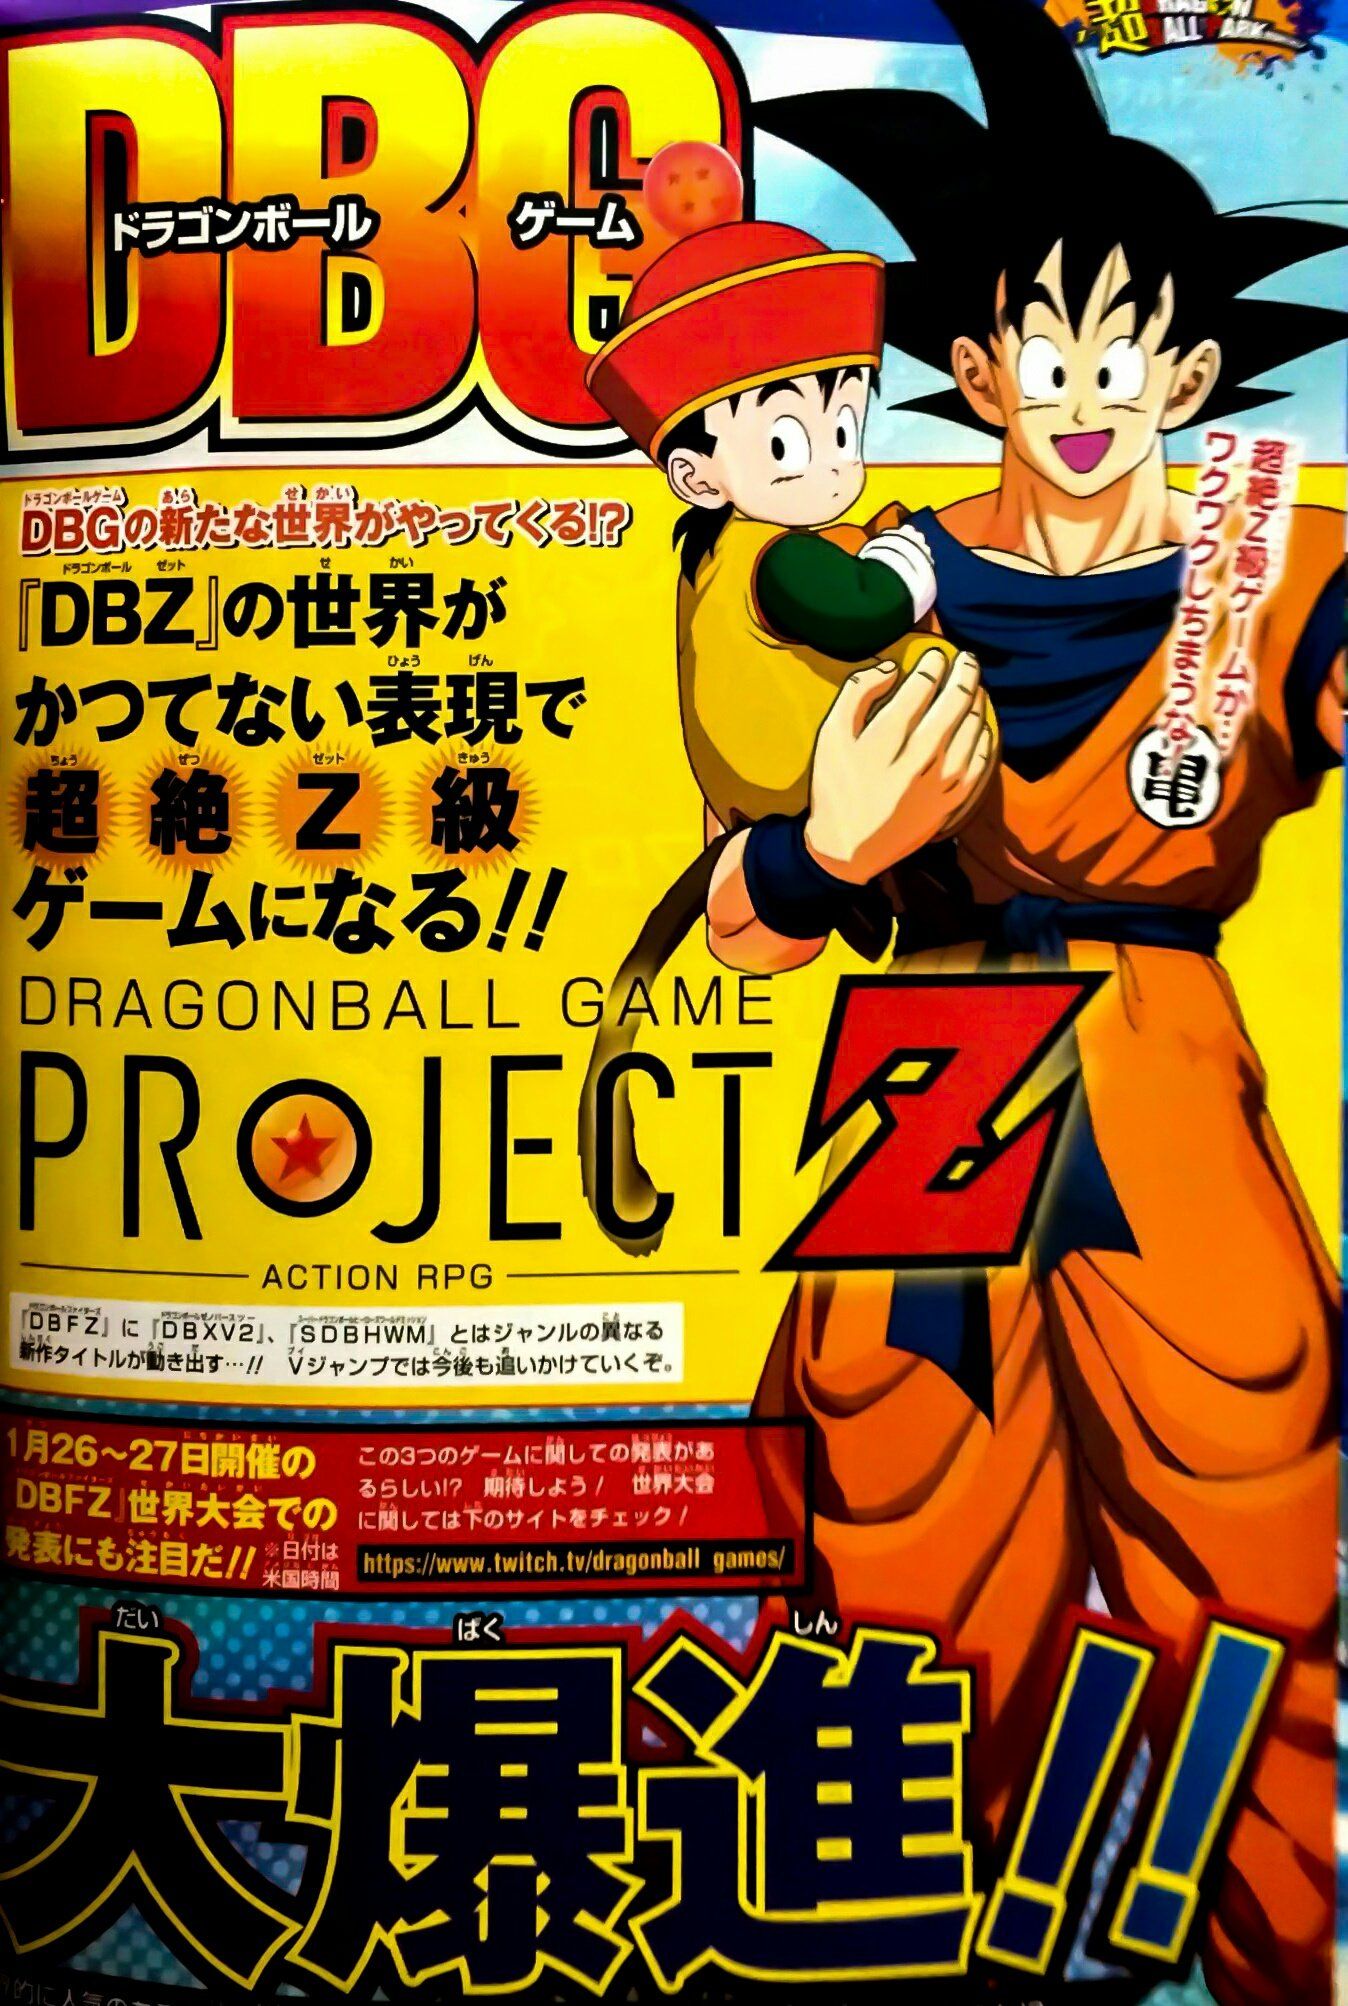 Dragon-Ball-Game-Project-Z-2.jpg